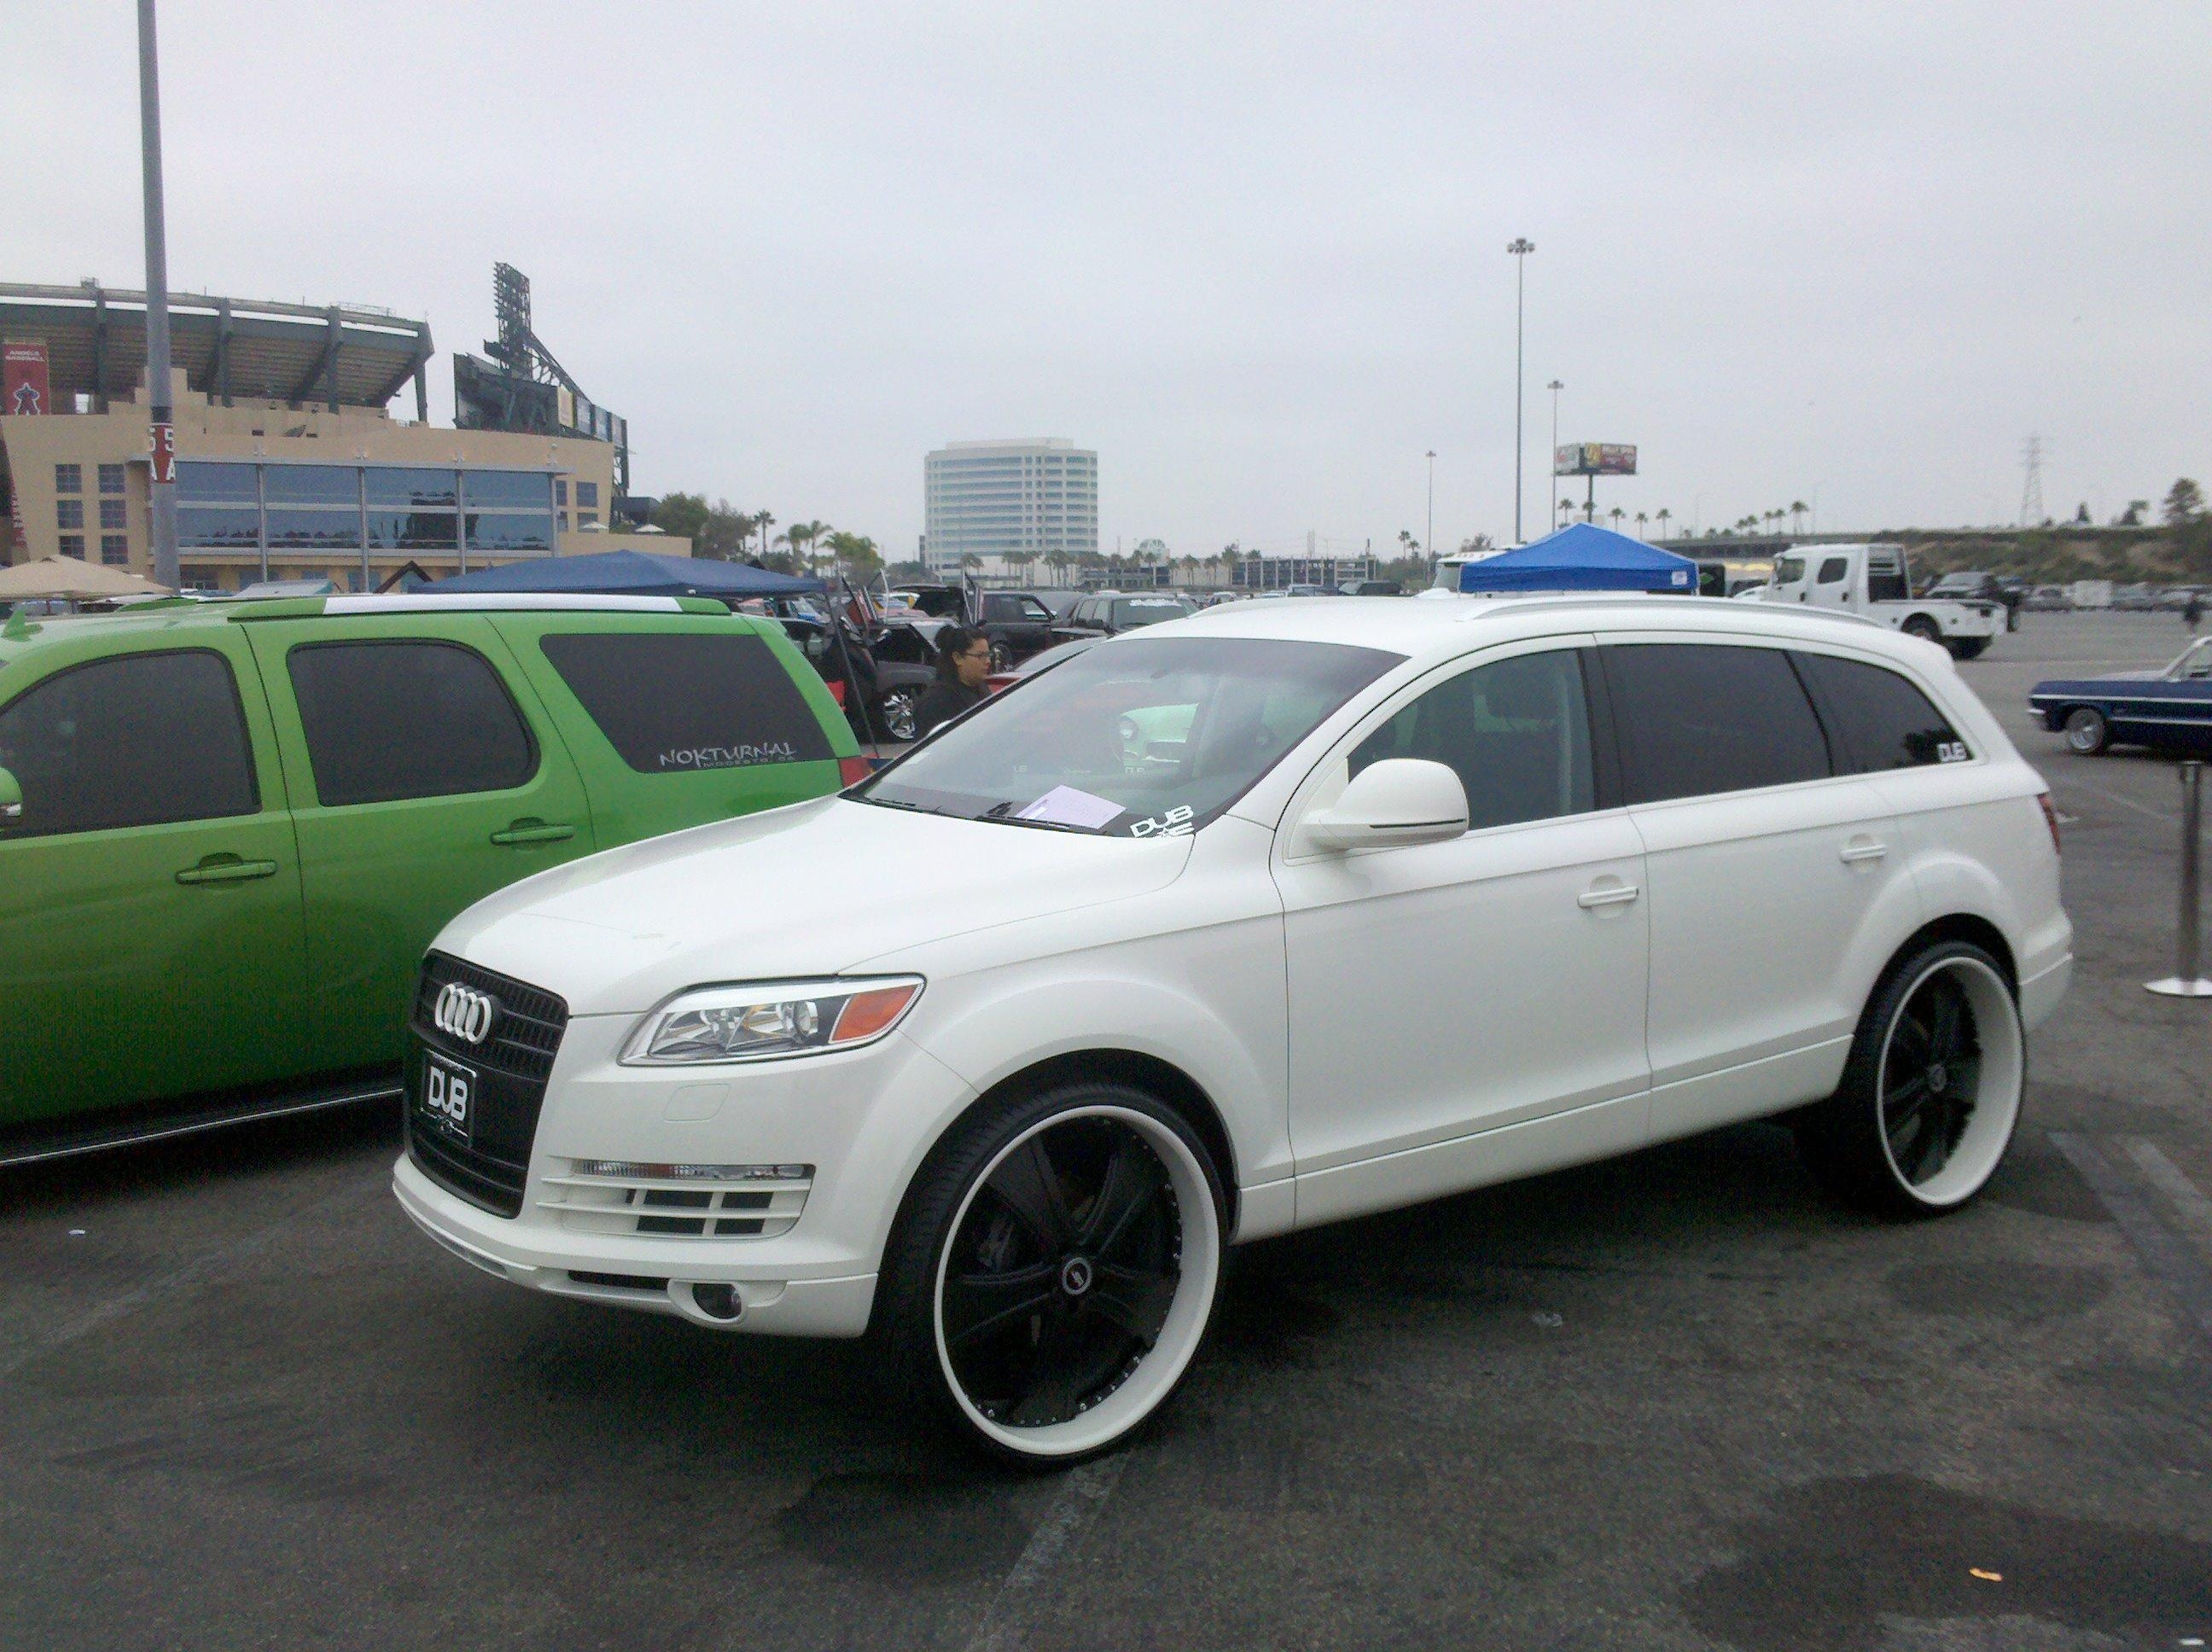 swiftcchh 2007 audi q73 6 quattro sport utility 4d specs photos modification info at cardomain. Black Bedroom Furniture Sets. Home Design Ideas